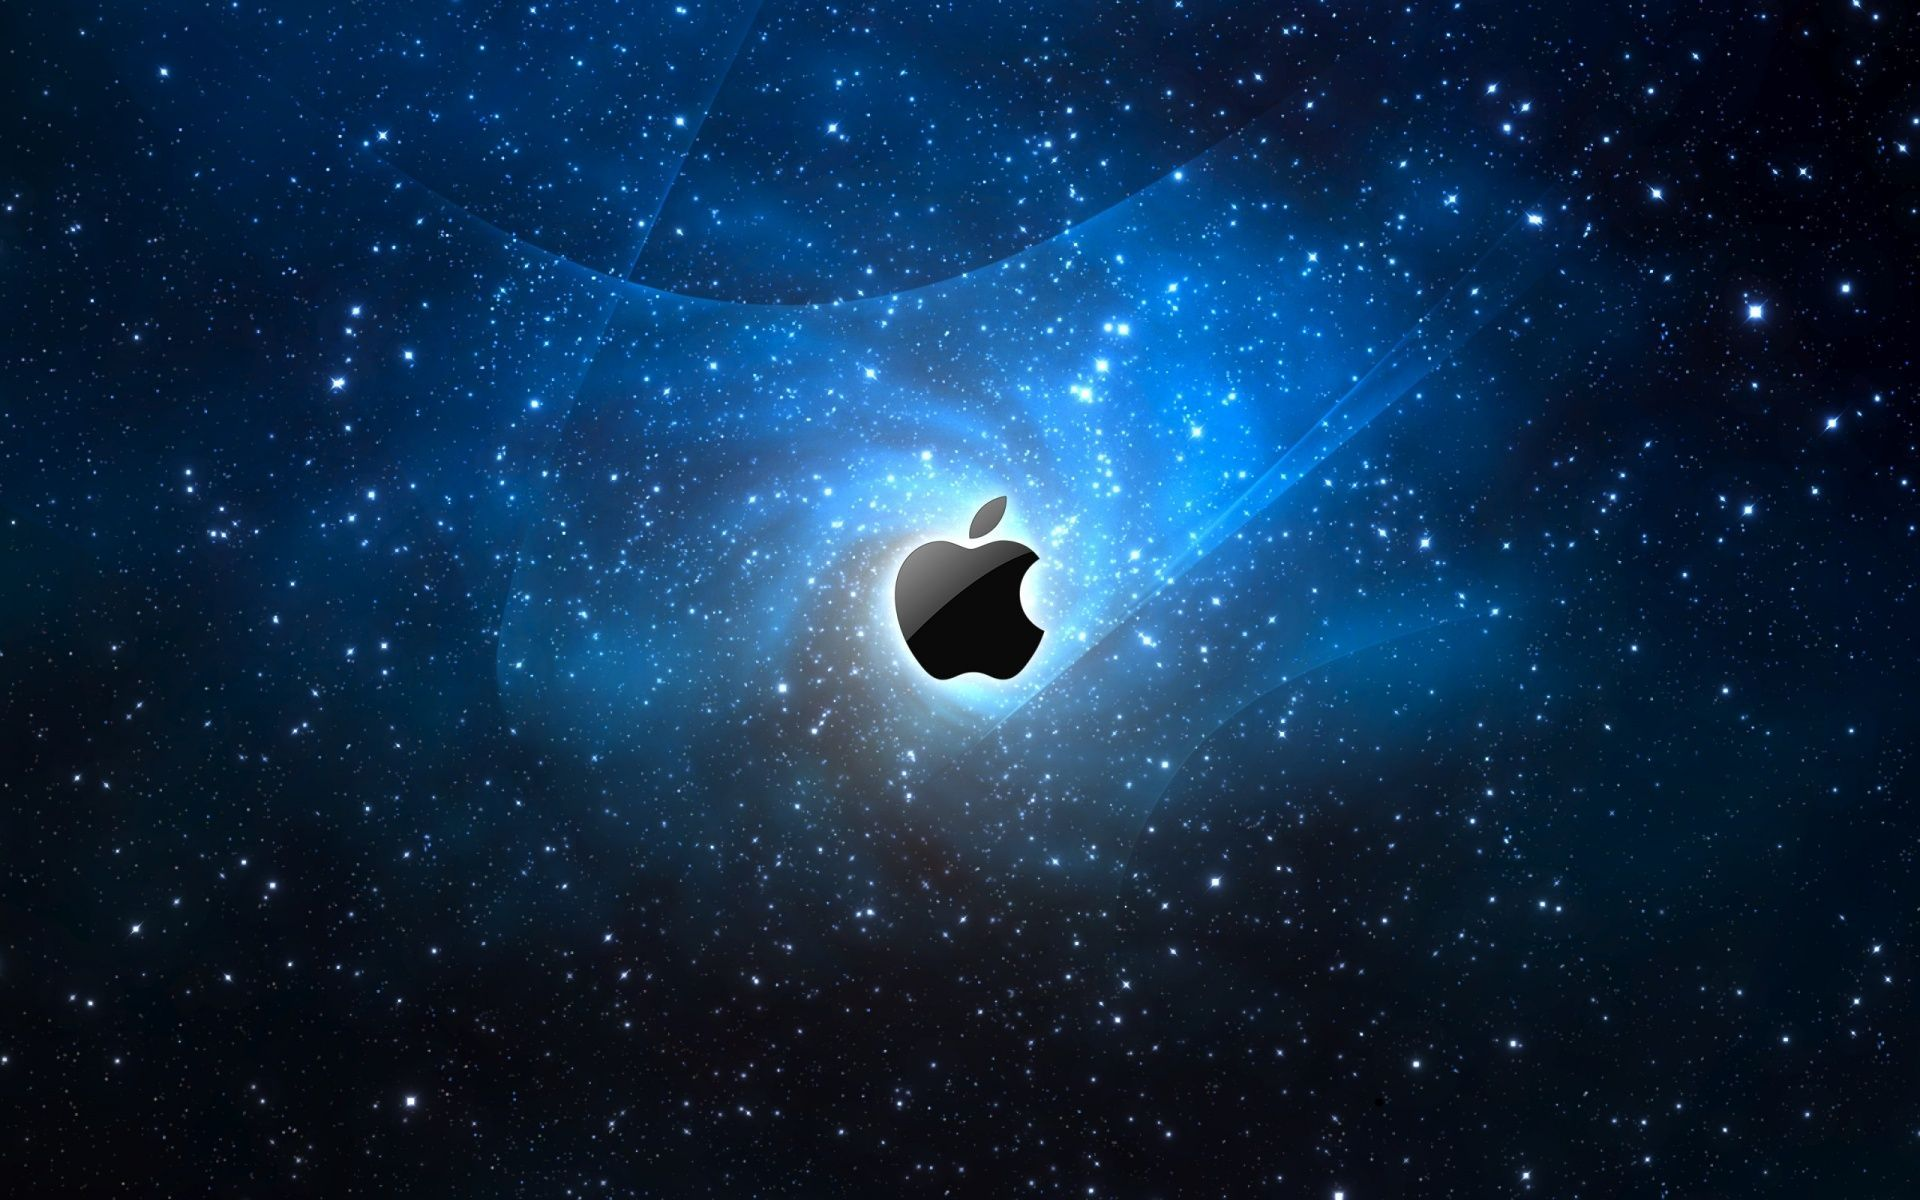 Cool Apple Logo Wallpapers - Wallpaper Cave